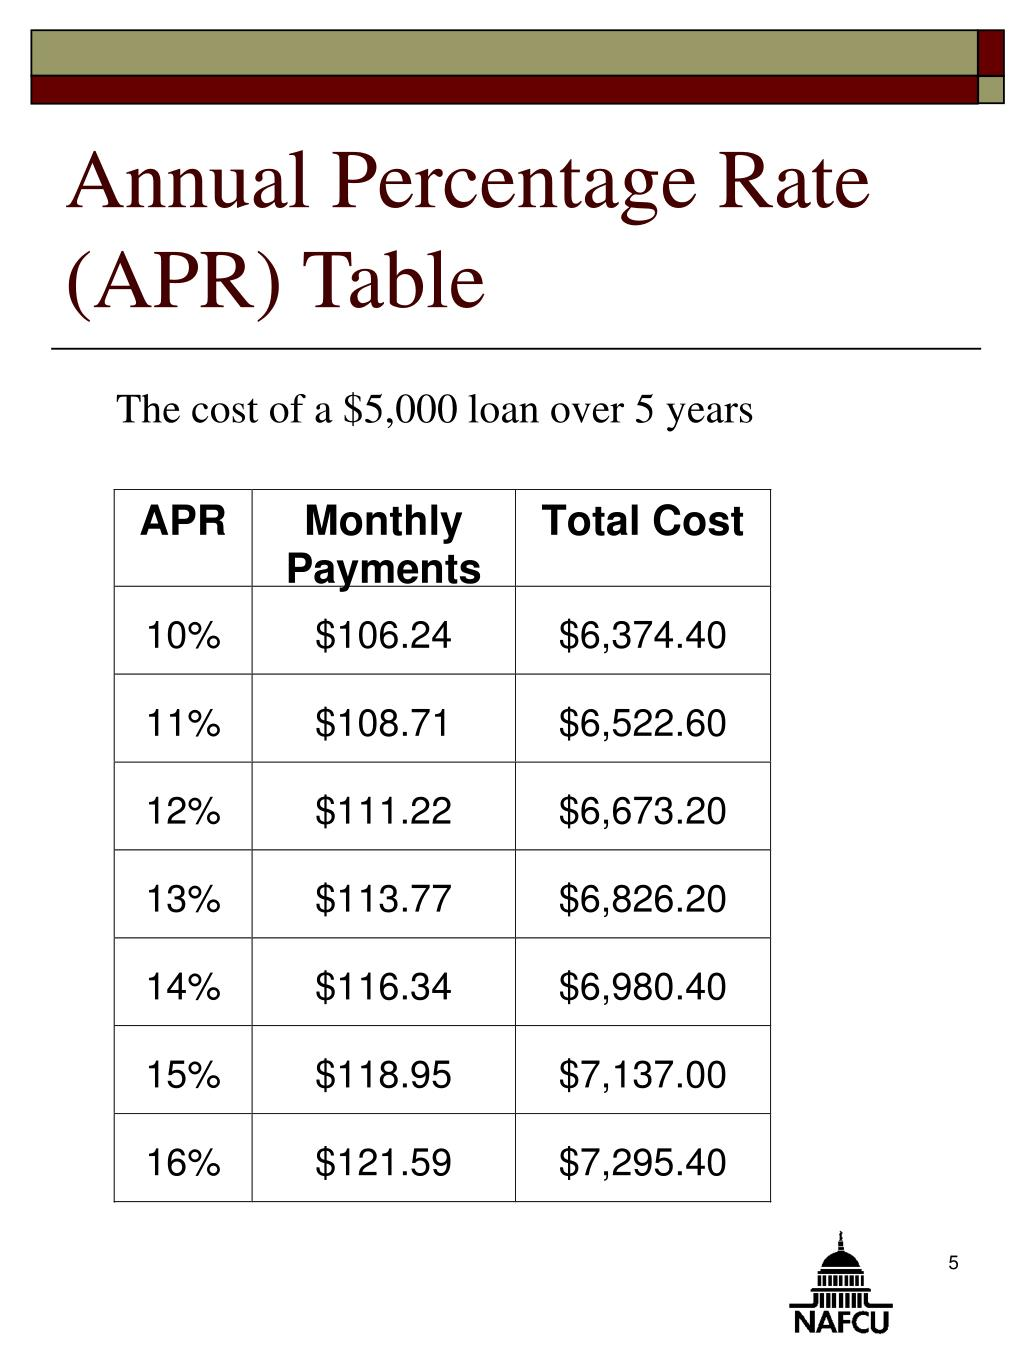 Annual Percentage Rate (APR) Table